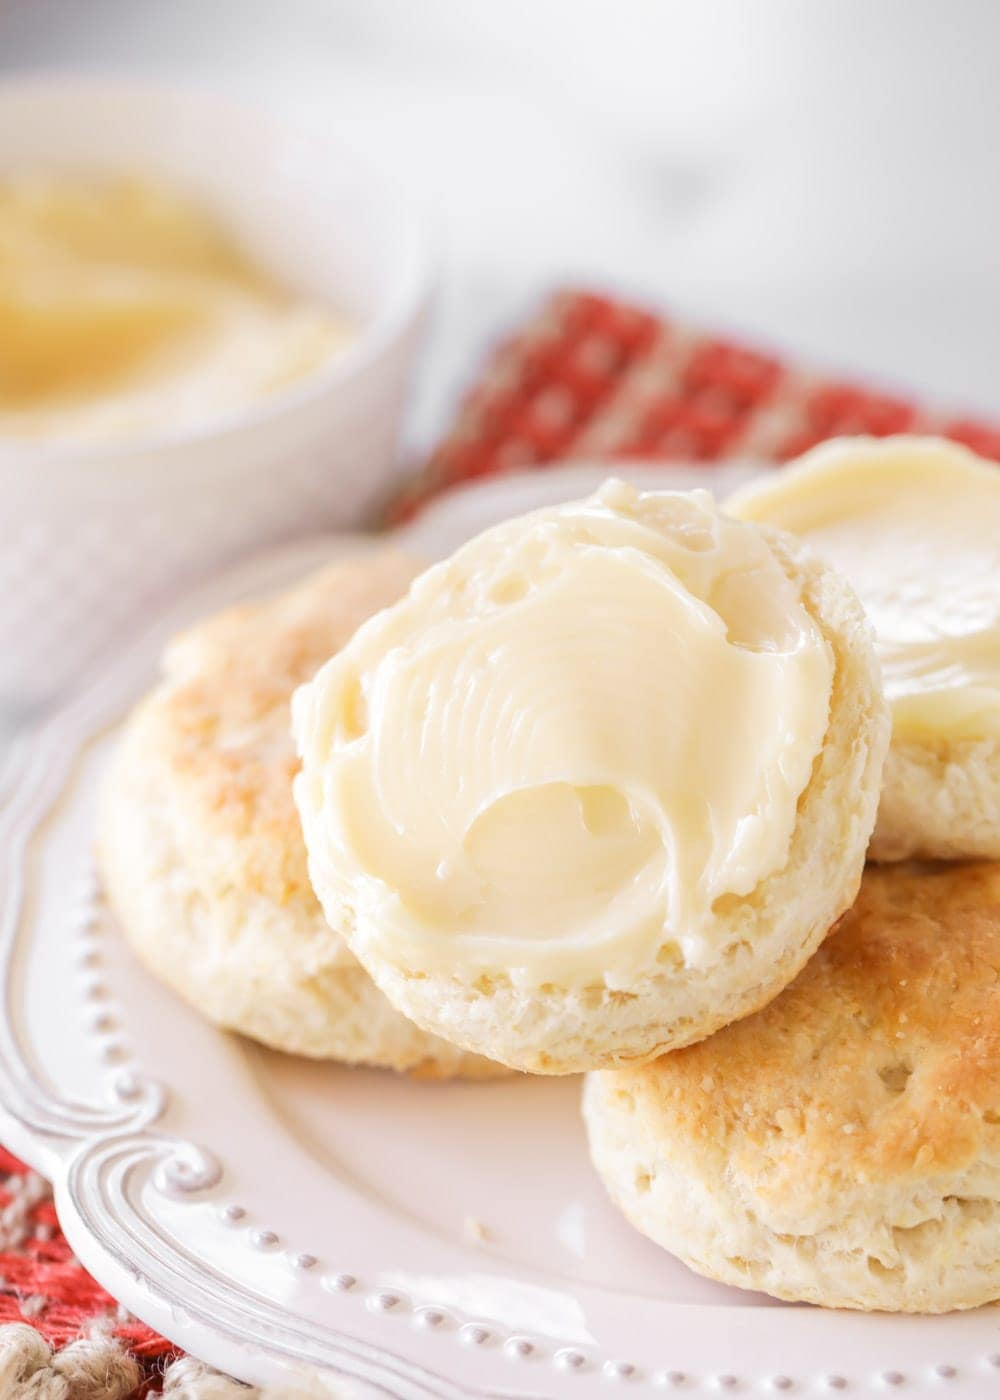 Homemade honey butter spread on biscuits